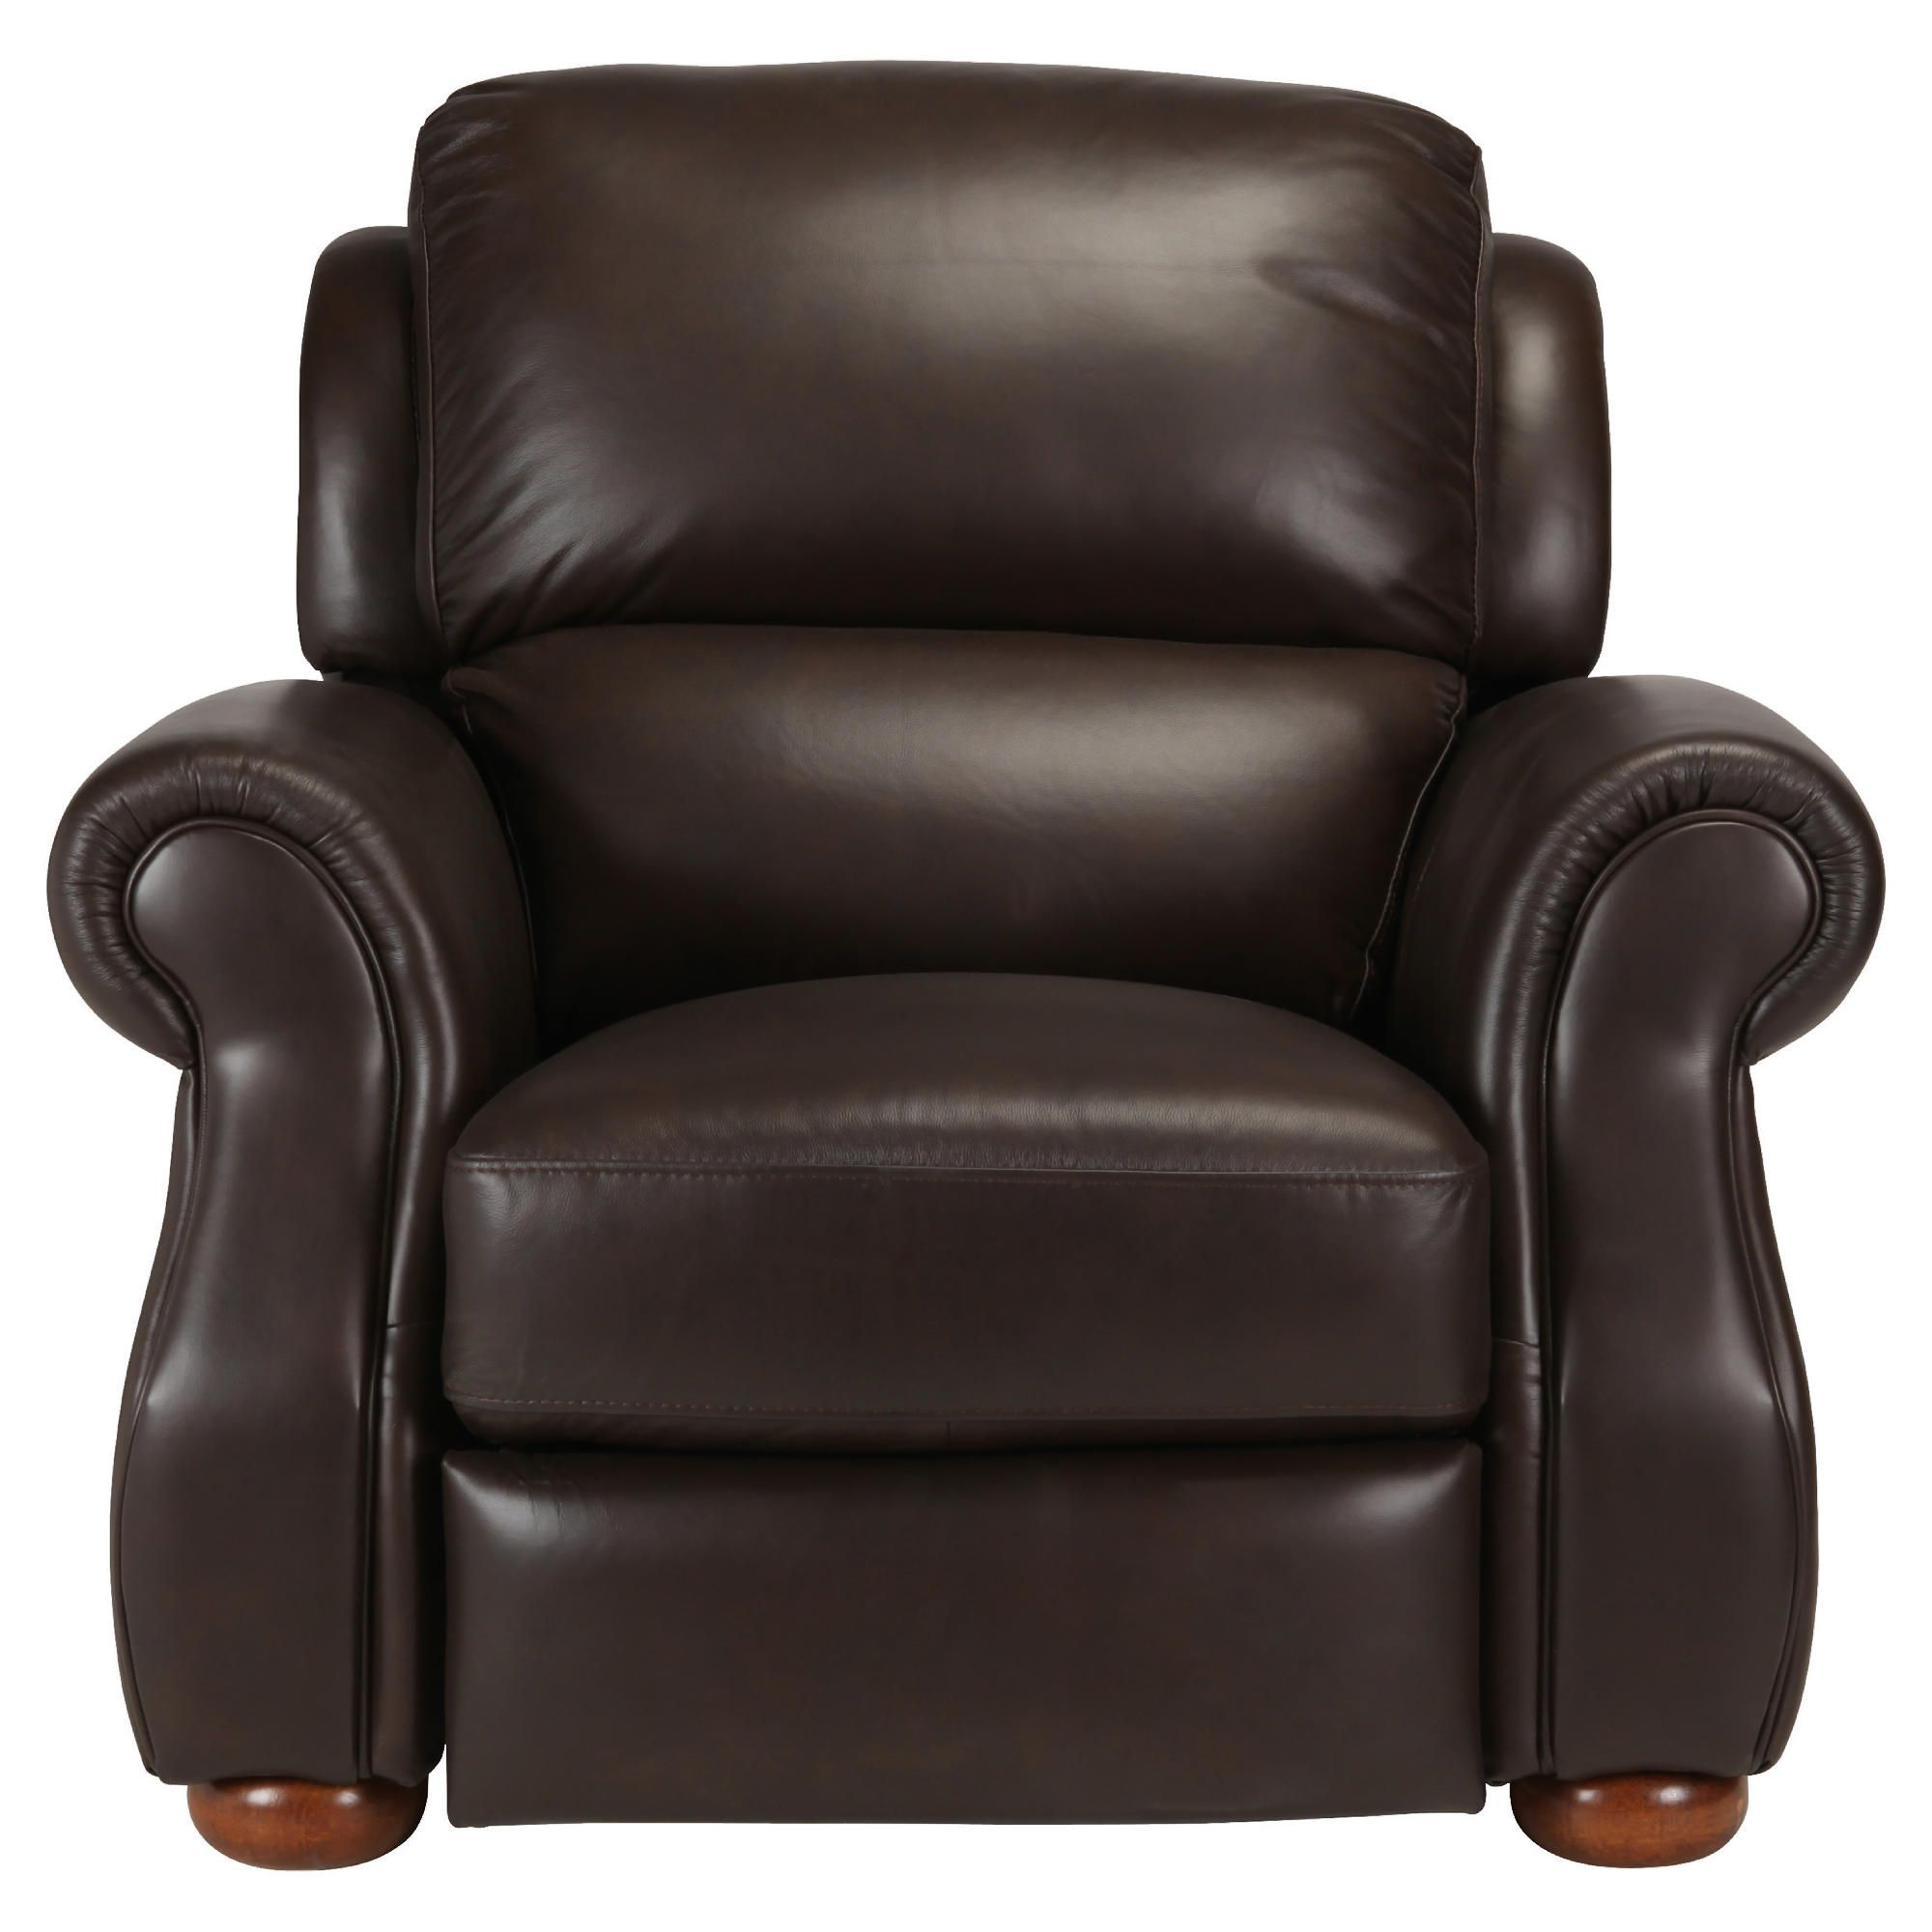 Paloma Leather Push Back Recliner Chocolate at Tesco Direct